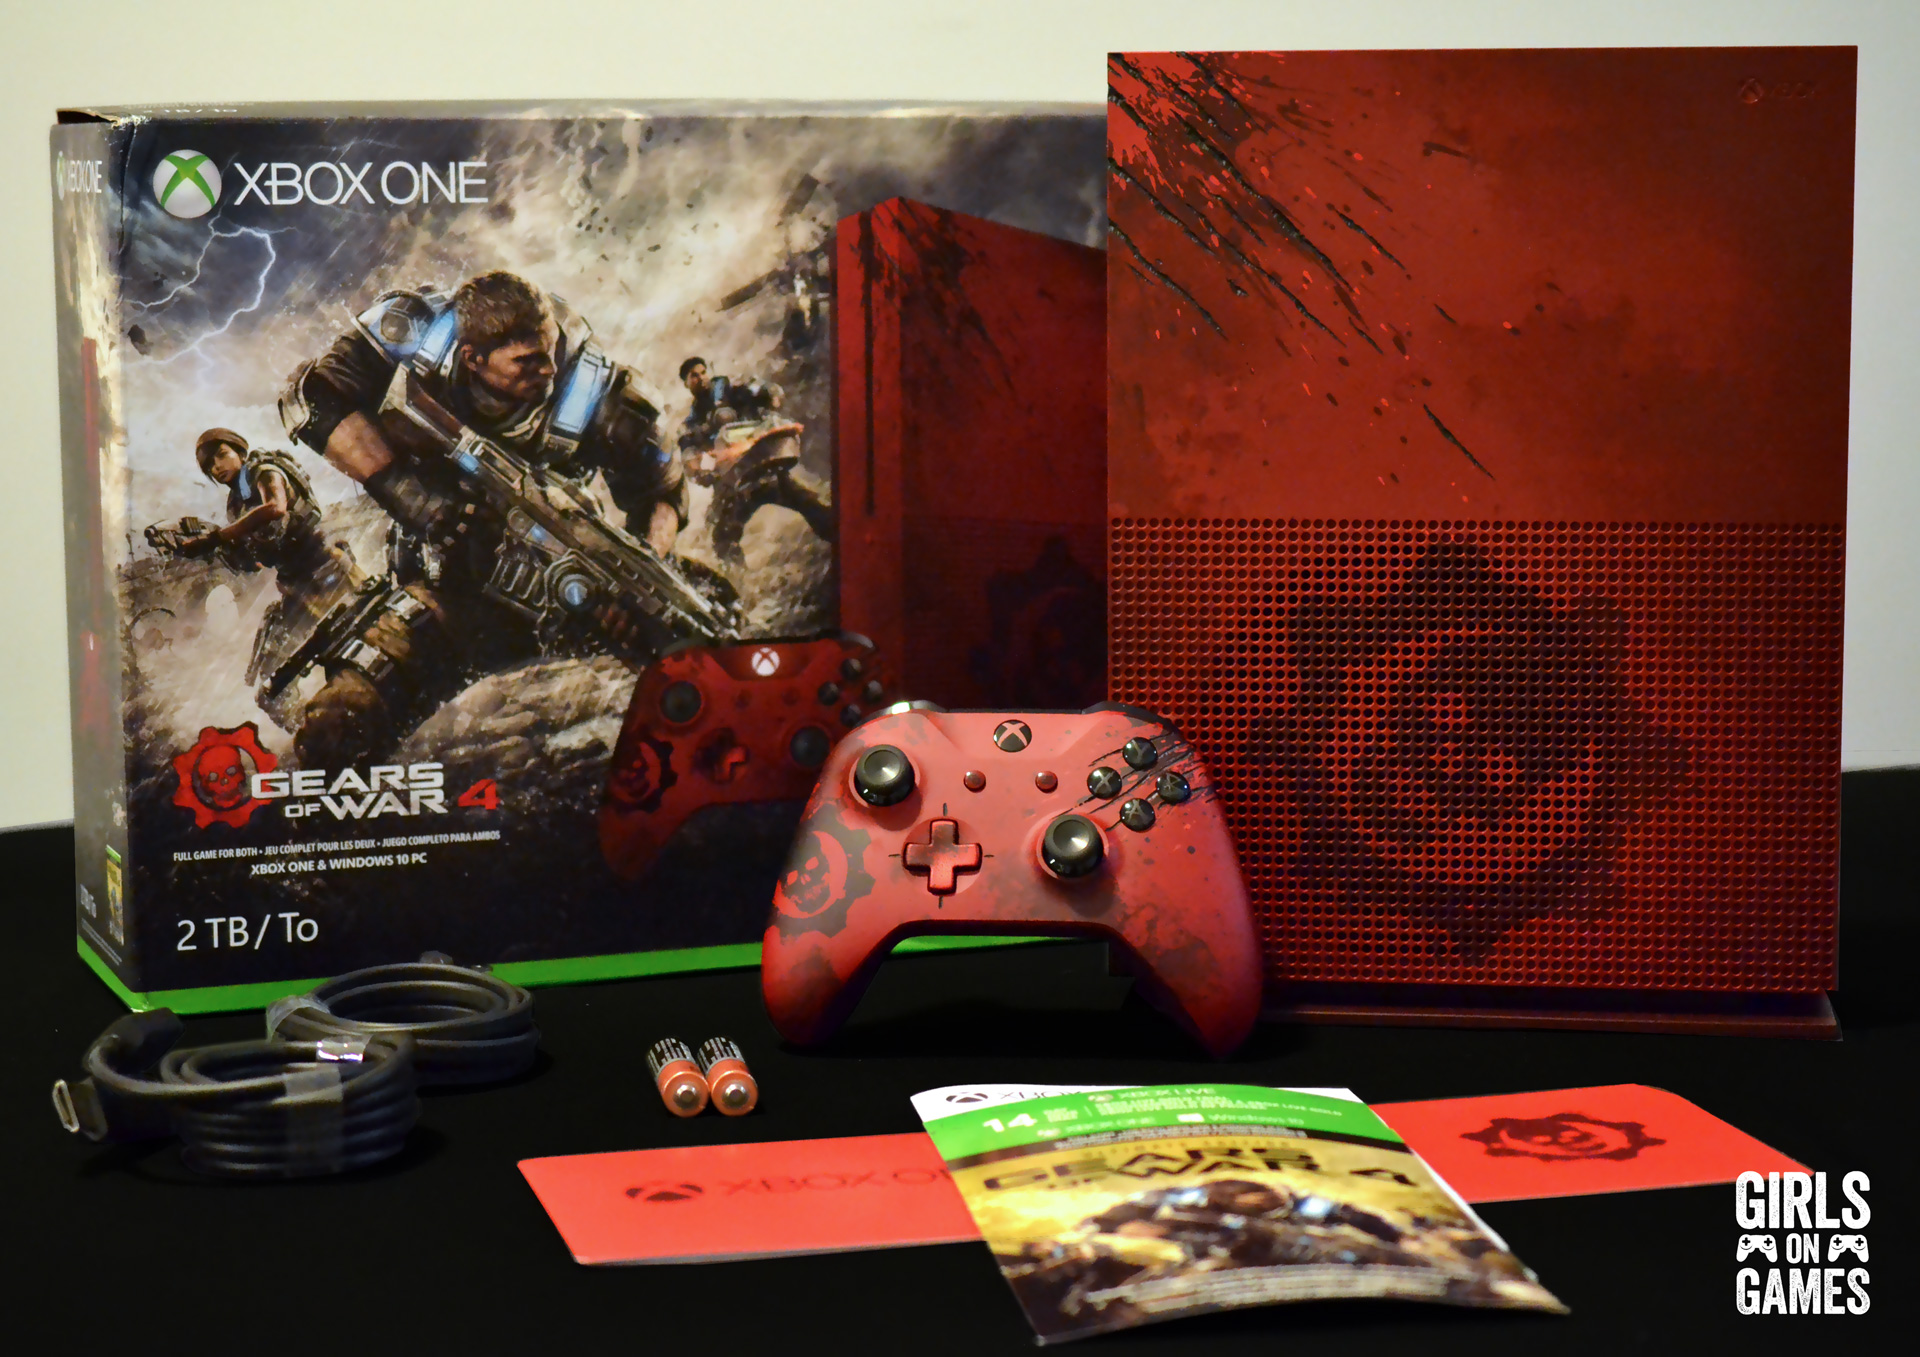 Unboxing The Xbox One S Gears Of War 4 Limited Edition Bundle